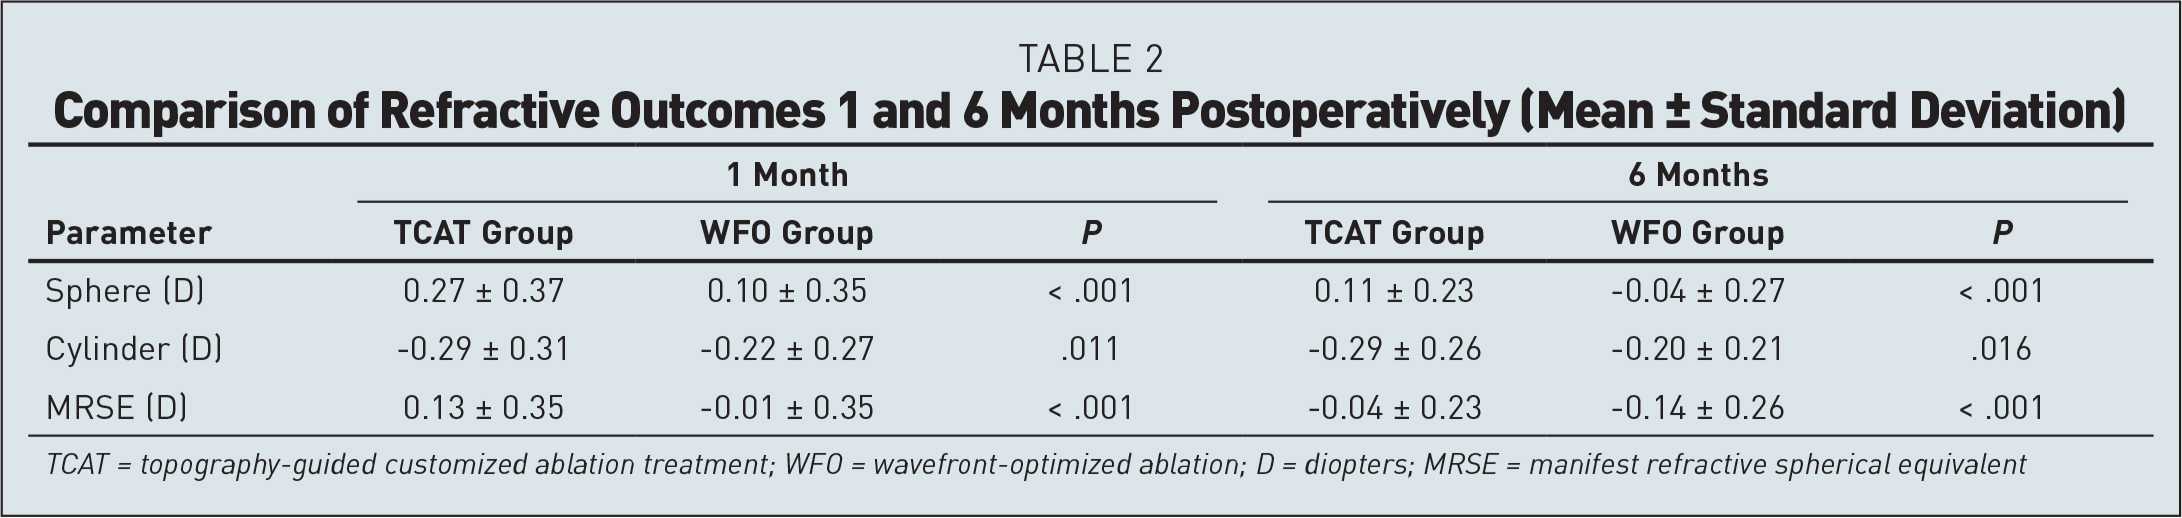 Comparison of Refractive Outcomes 1 and 6 Months Postoperatively (Mean ± Standard Deviation)